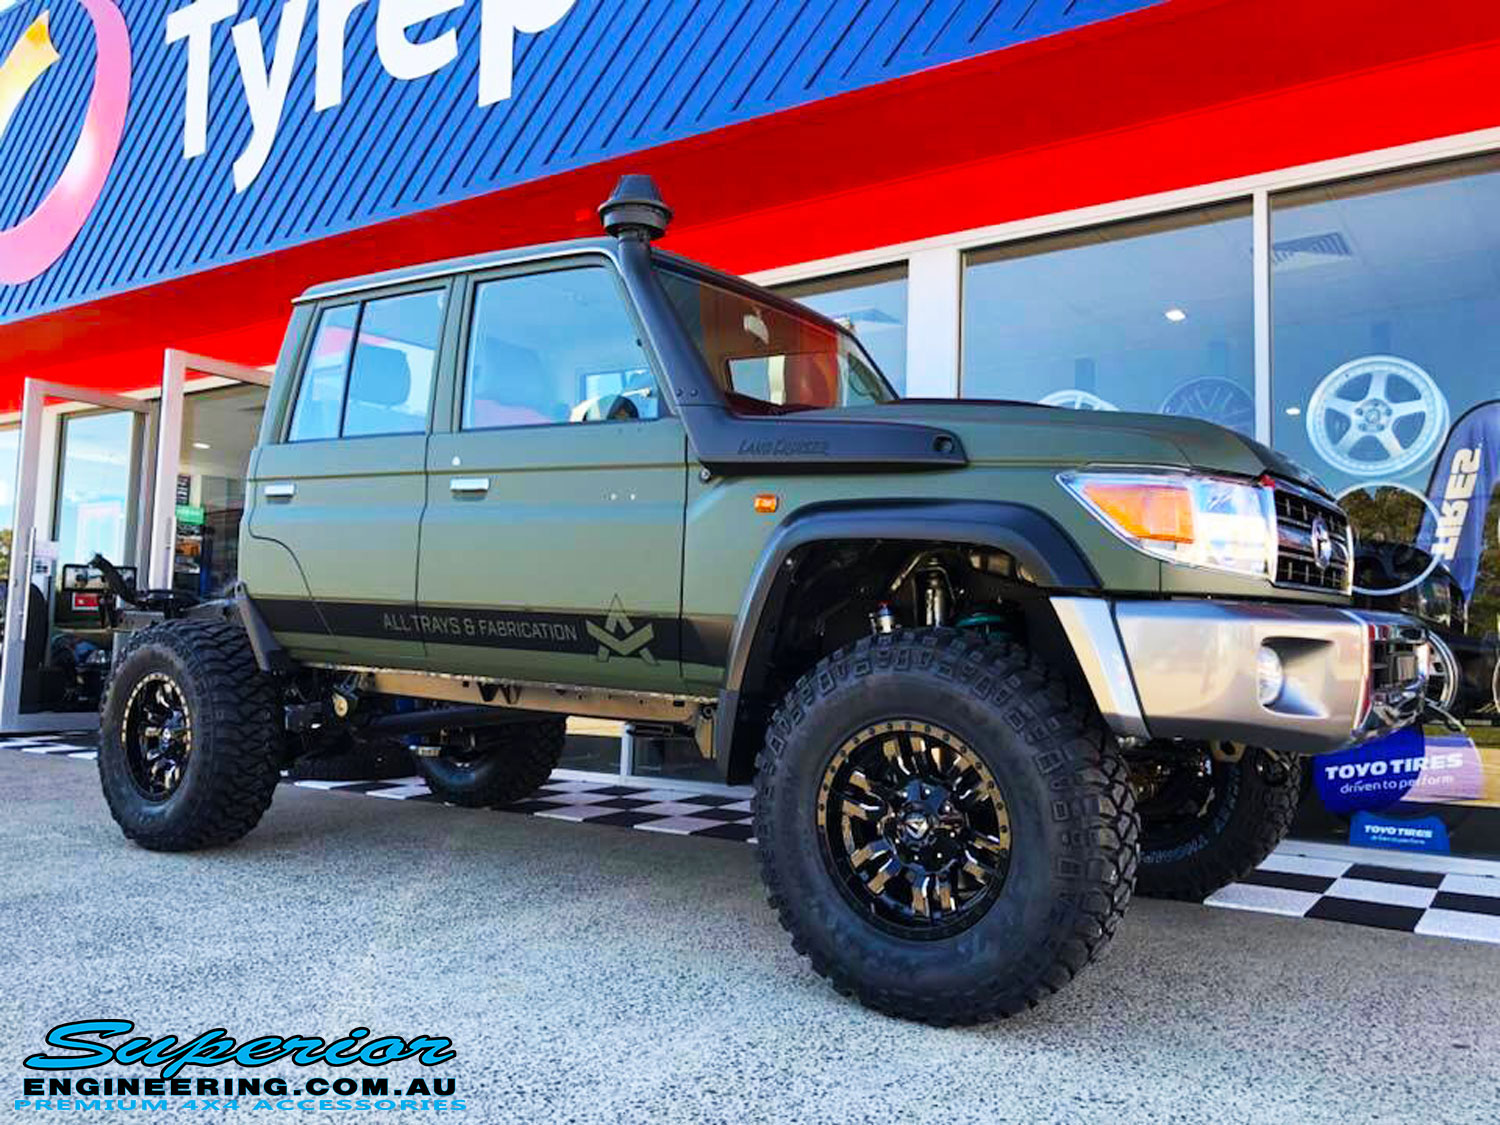 "Right front side view of a Green Toyota 79 Series Landcruiser Dual Cab after fitment of a Superior 4"" Inch Remote Reservoir Superflex Lift Kit"